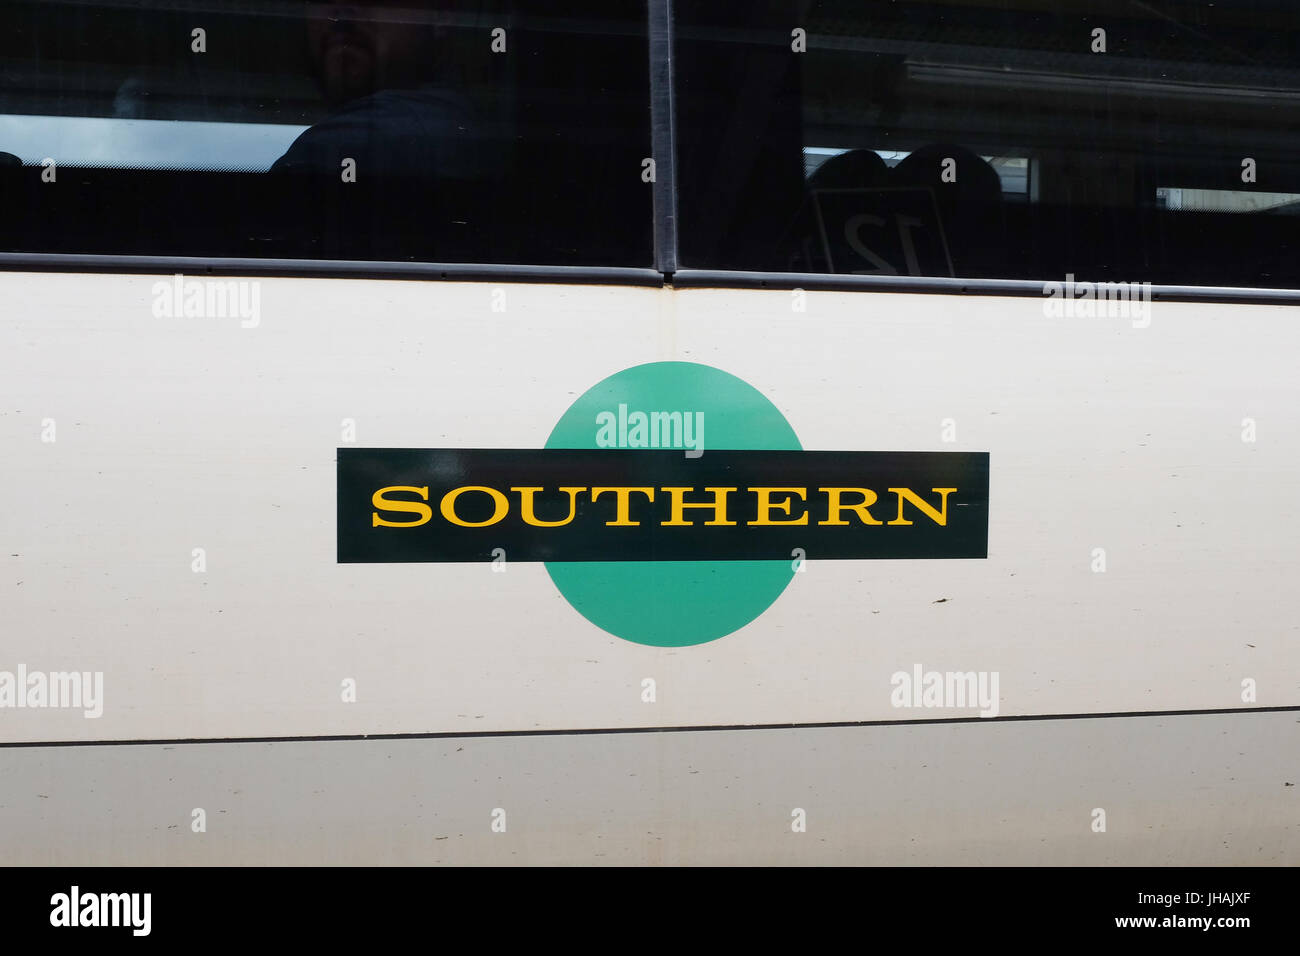 Logo of Southern trains in England, U.K. - Stock Image